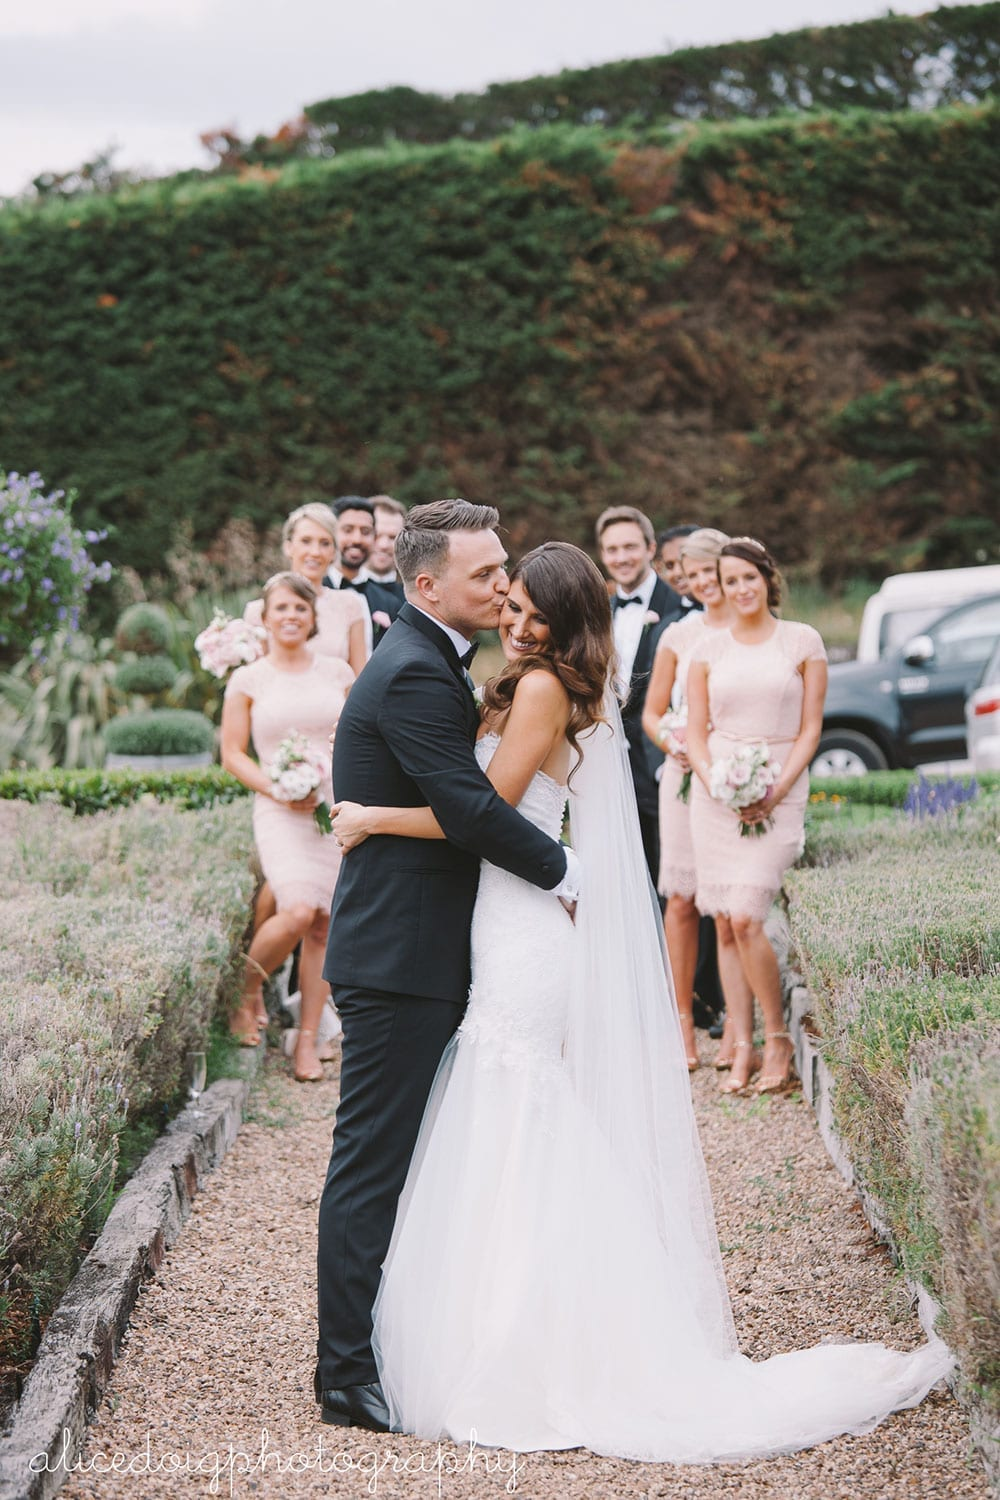 Real Weddings | Vinka Design | Real Brides Wearing Vinka Gowns | Gemma and Colin with bridal party behind